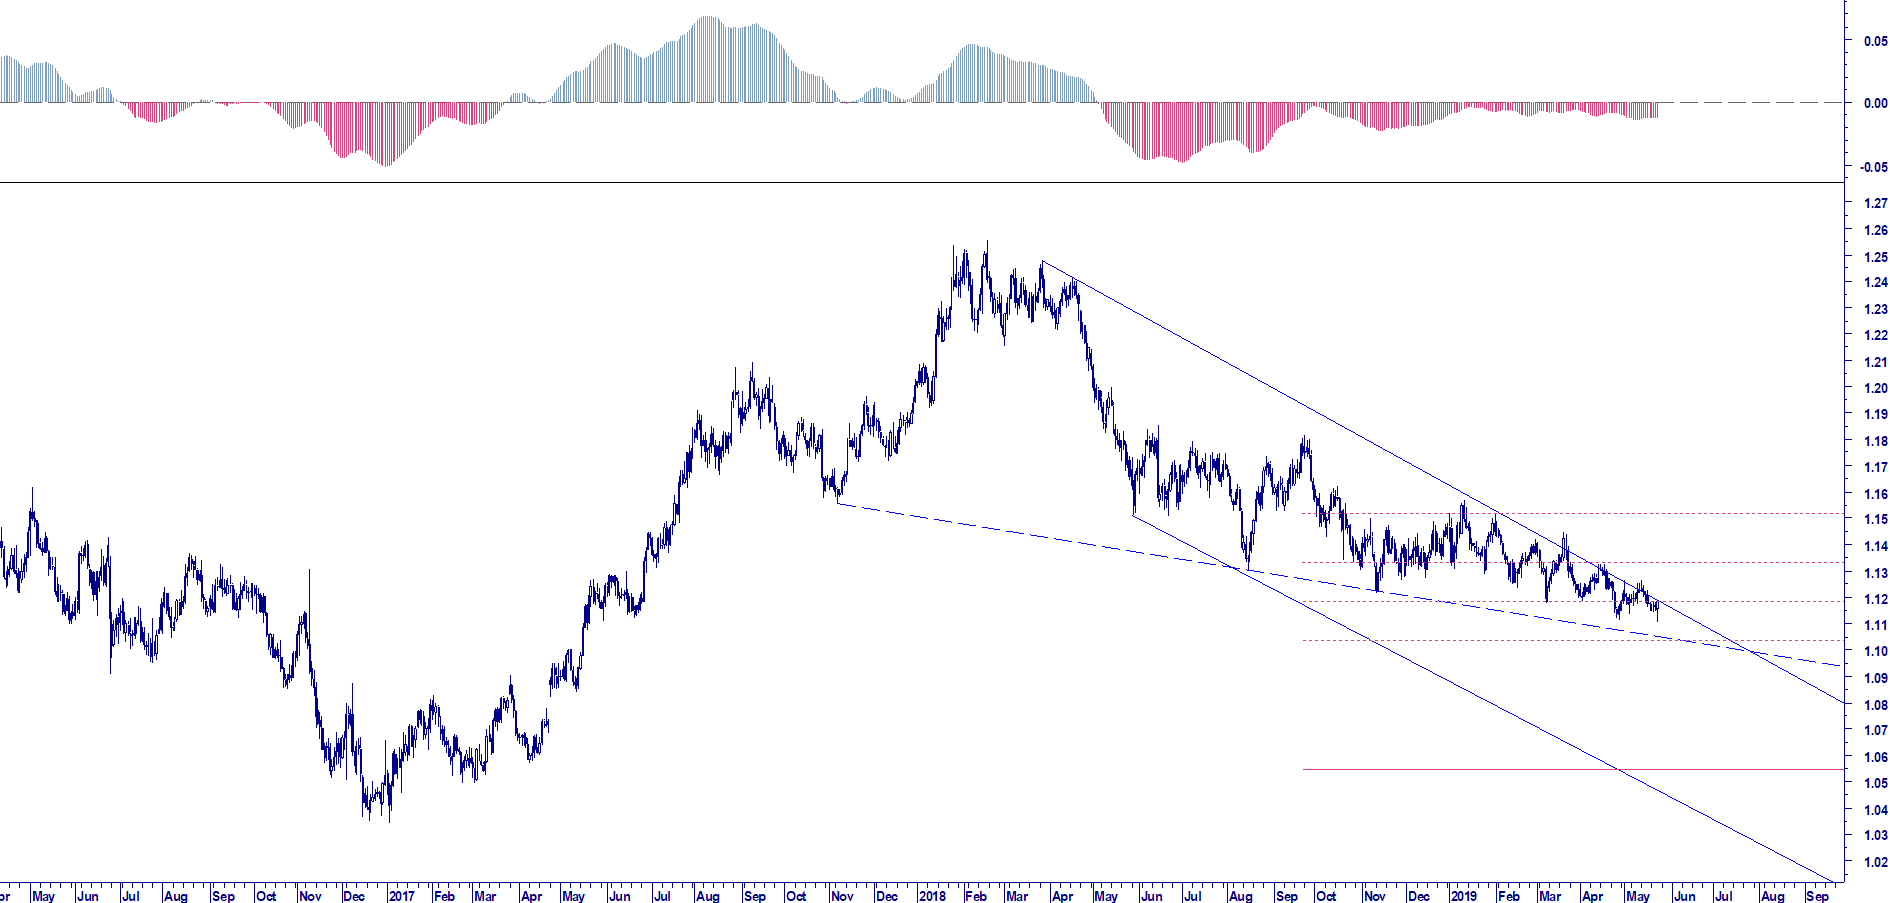 WB ETERPRISE RISK MANAGEMENT; EUR USD CYCLE